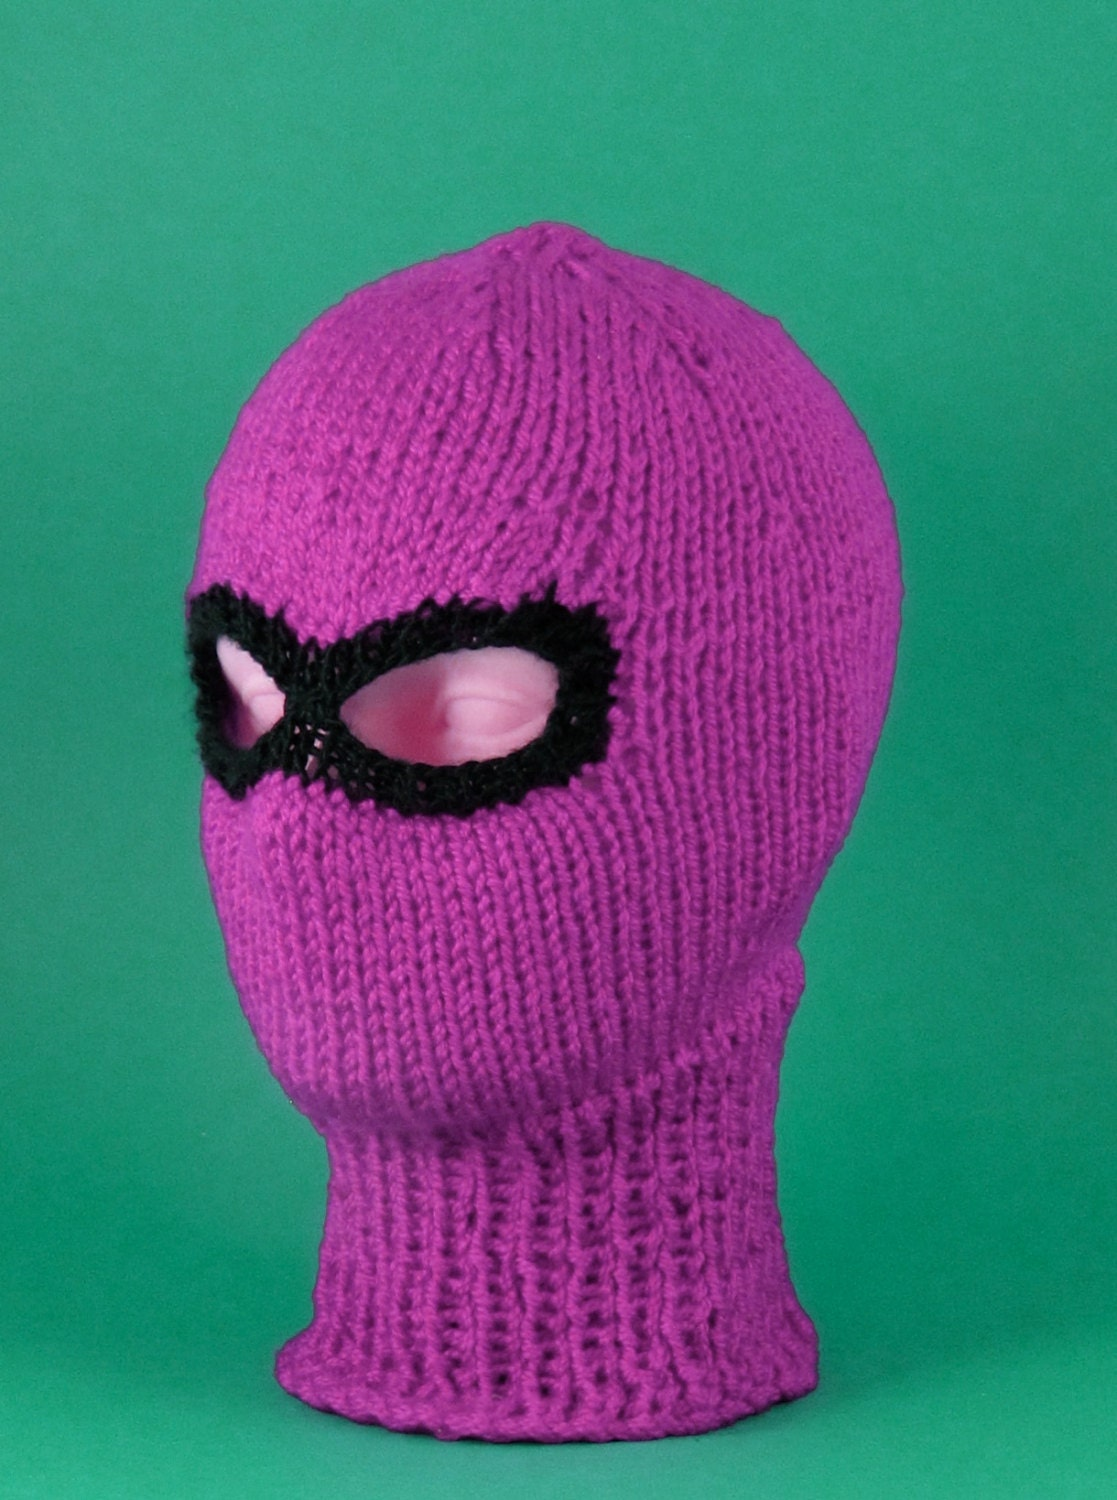 Chunky Balaclava Knitting Pattern : 40% OFF SALE Chunky Ski Mask Balaclava CIRCULAR knitting pattern by madmonkey...